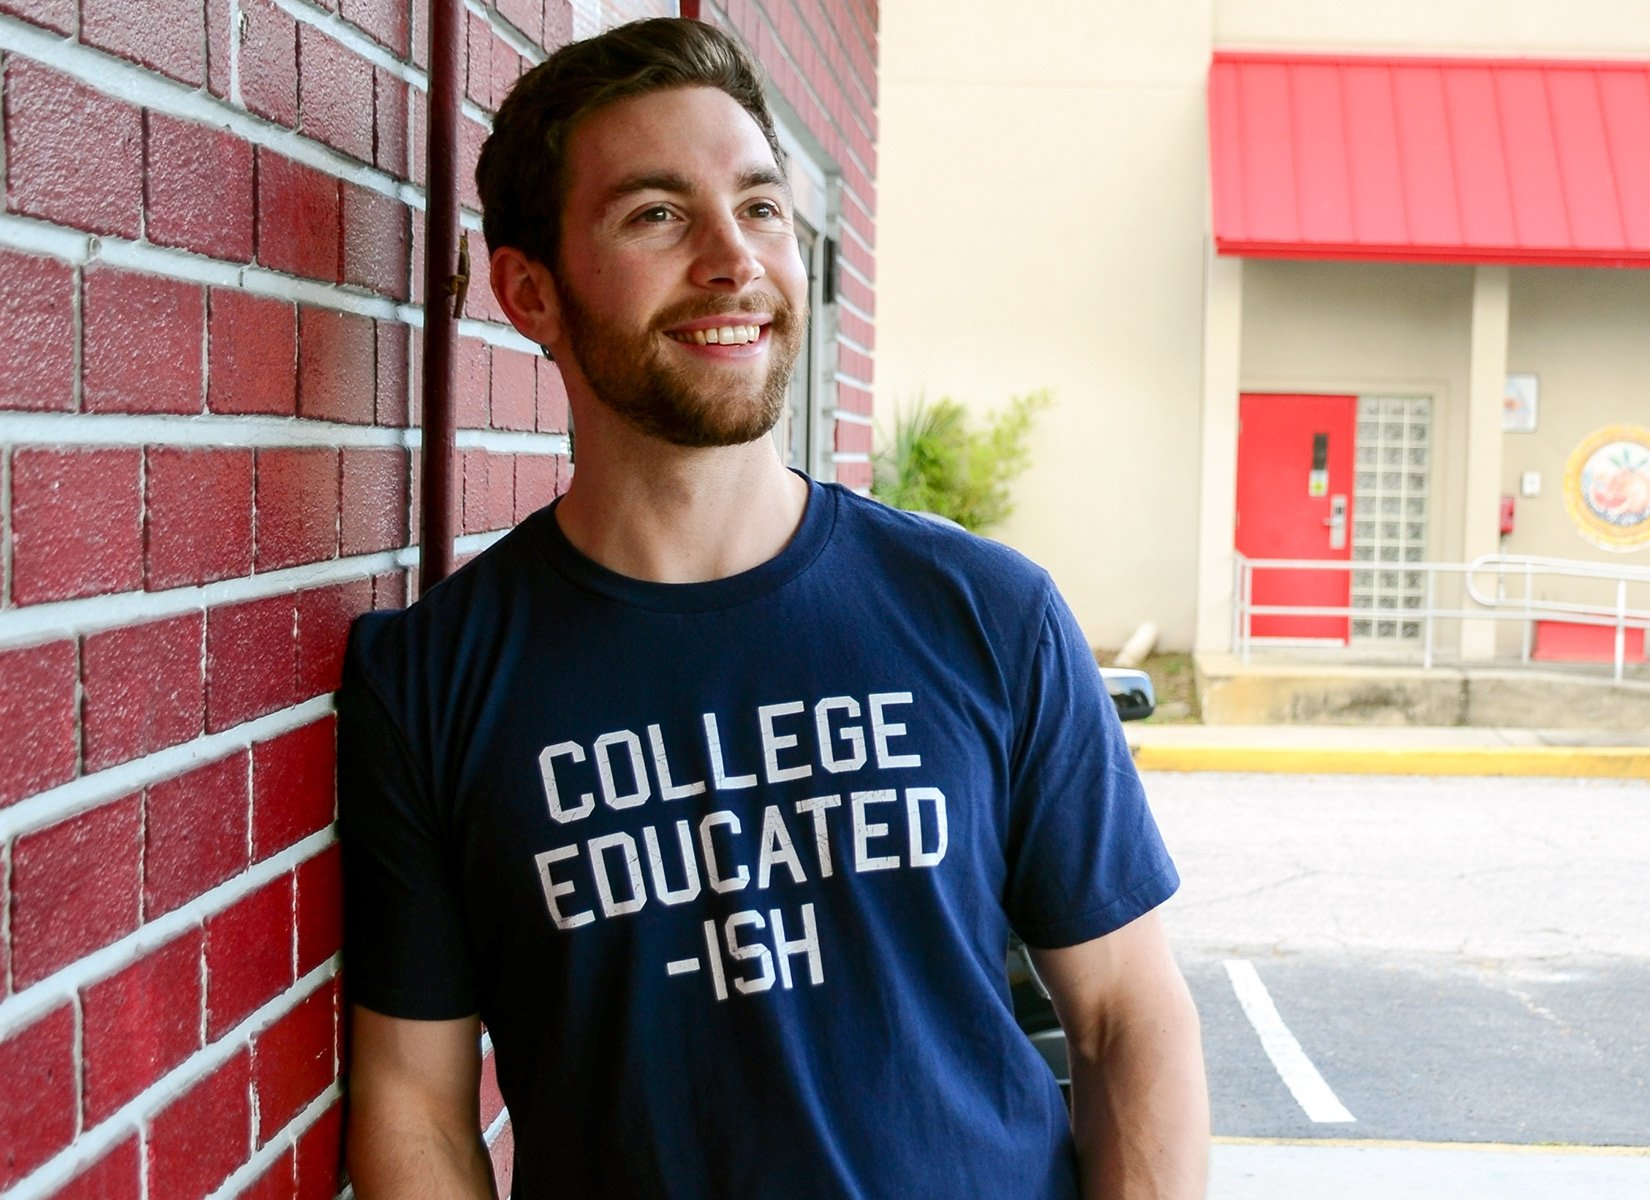 College Educated-ish on Mens T-Shirt